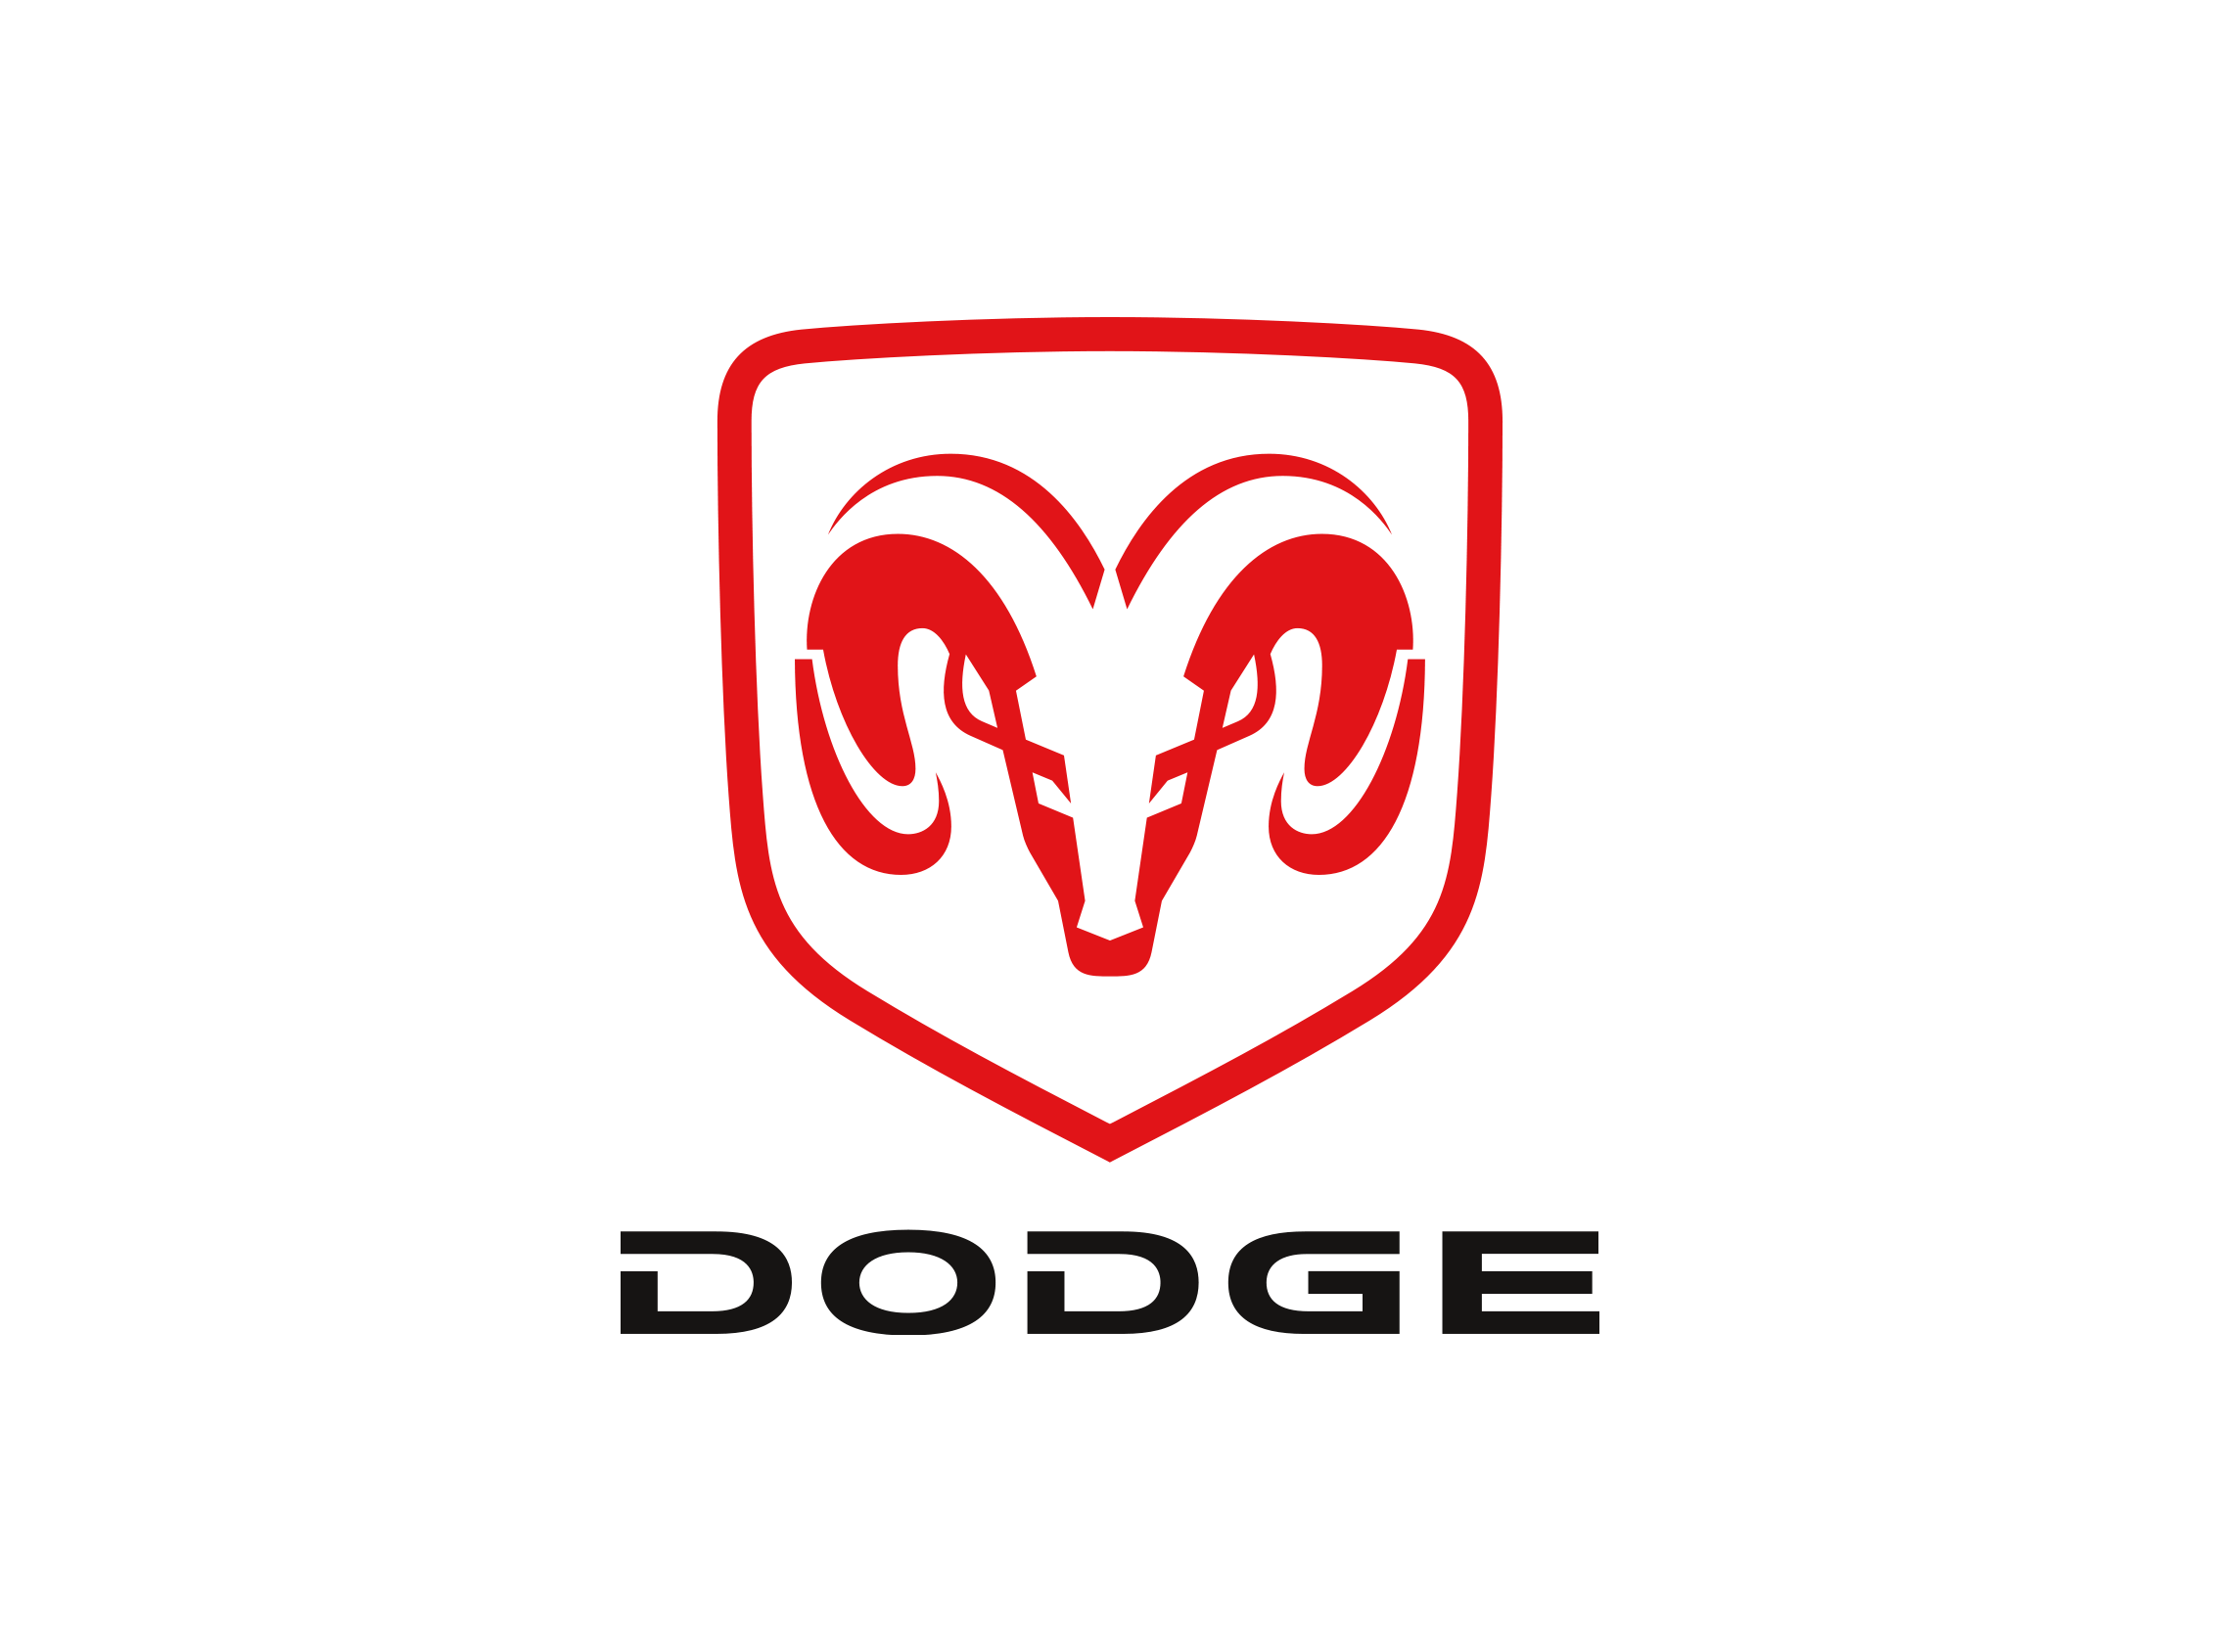 DODGE MOTOR IMPORT BRANDS VOITURE IMPORT USA MIAMI IMPORT VOITURE EUROP IMPORT USA MOTOR IMPORT7 - BUICK DUBAI importation voiture Dubai BUICK importation vehicule emirats arabe unis motorimport